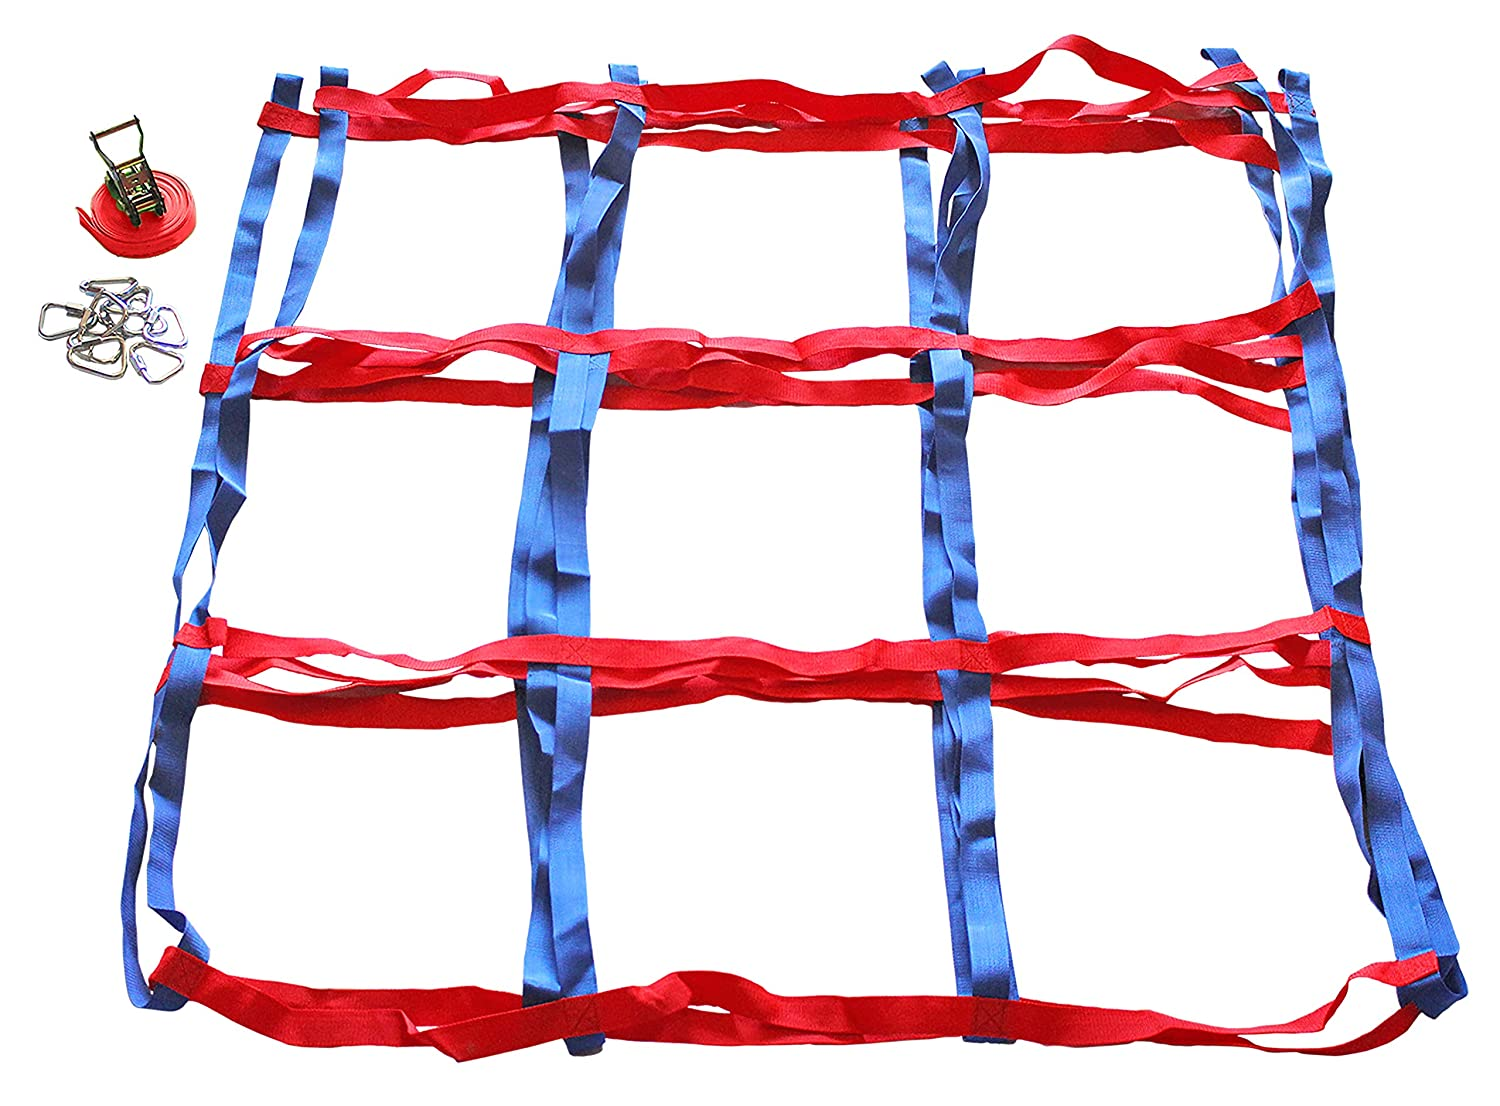 NinjaLine American Ninja Warrior 8FT (2.5M) Cargo NET Obstacle